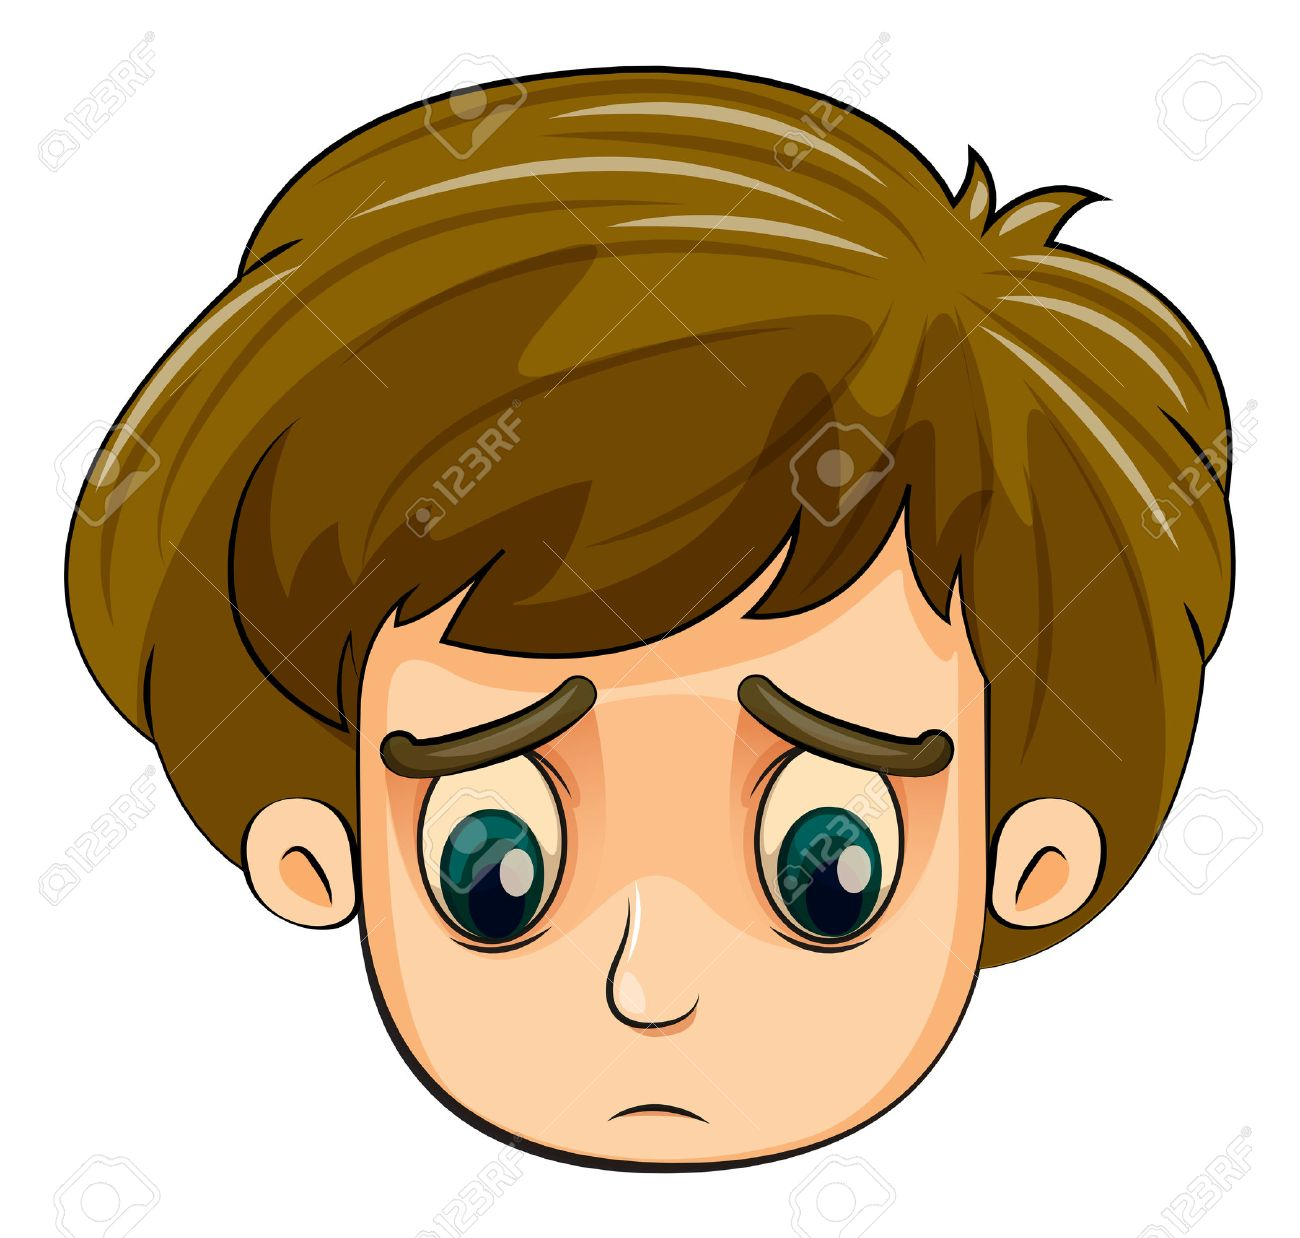 Illustration of a head of a sad young boy on a white background Stock Vector - 23198900